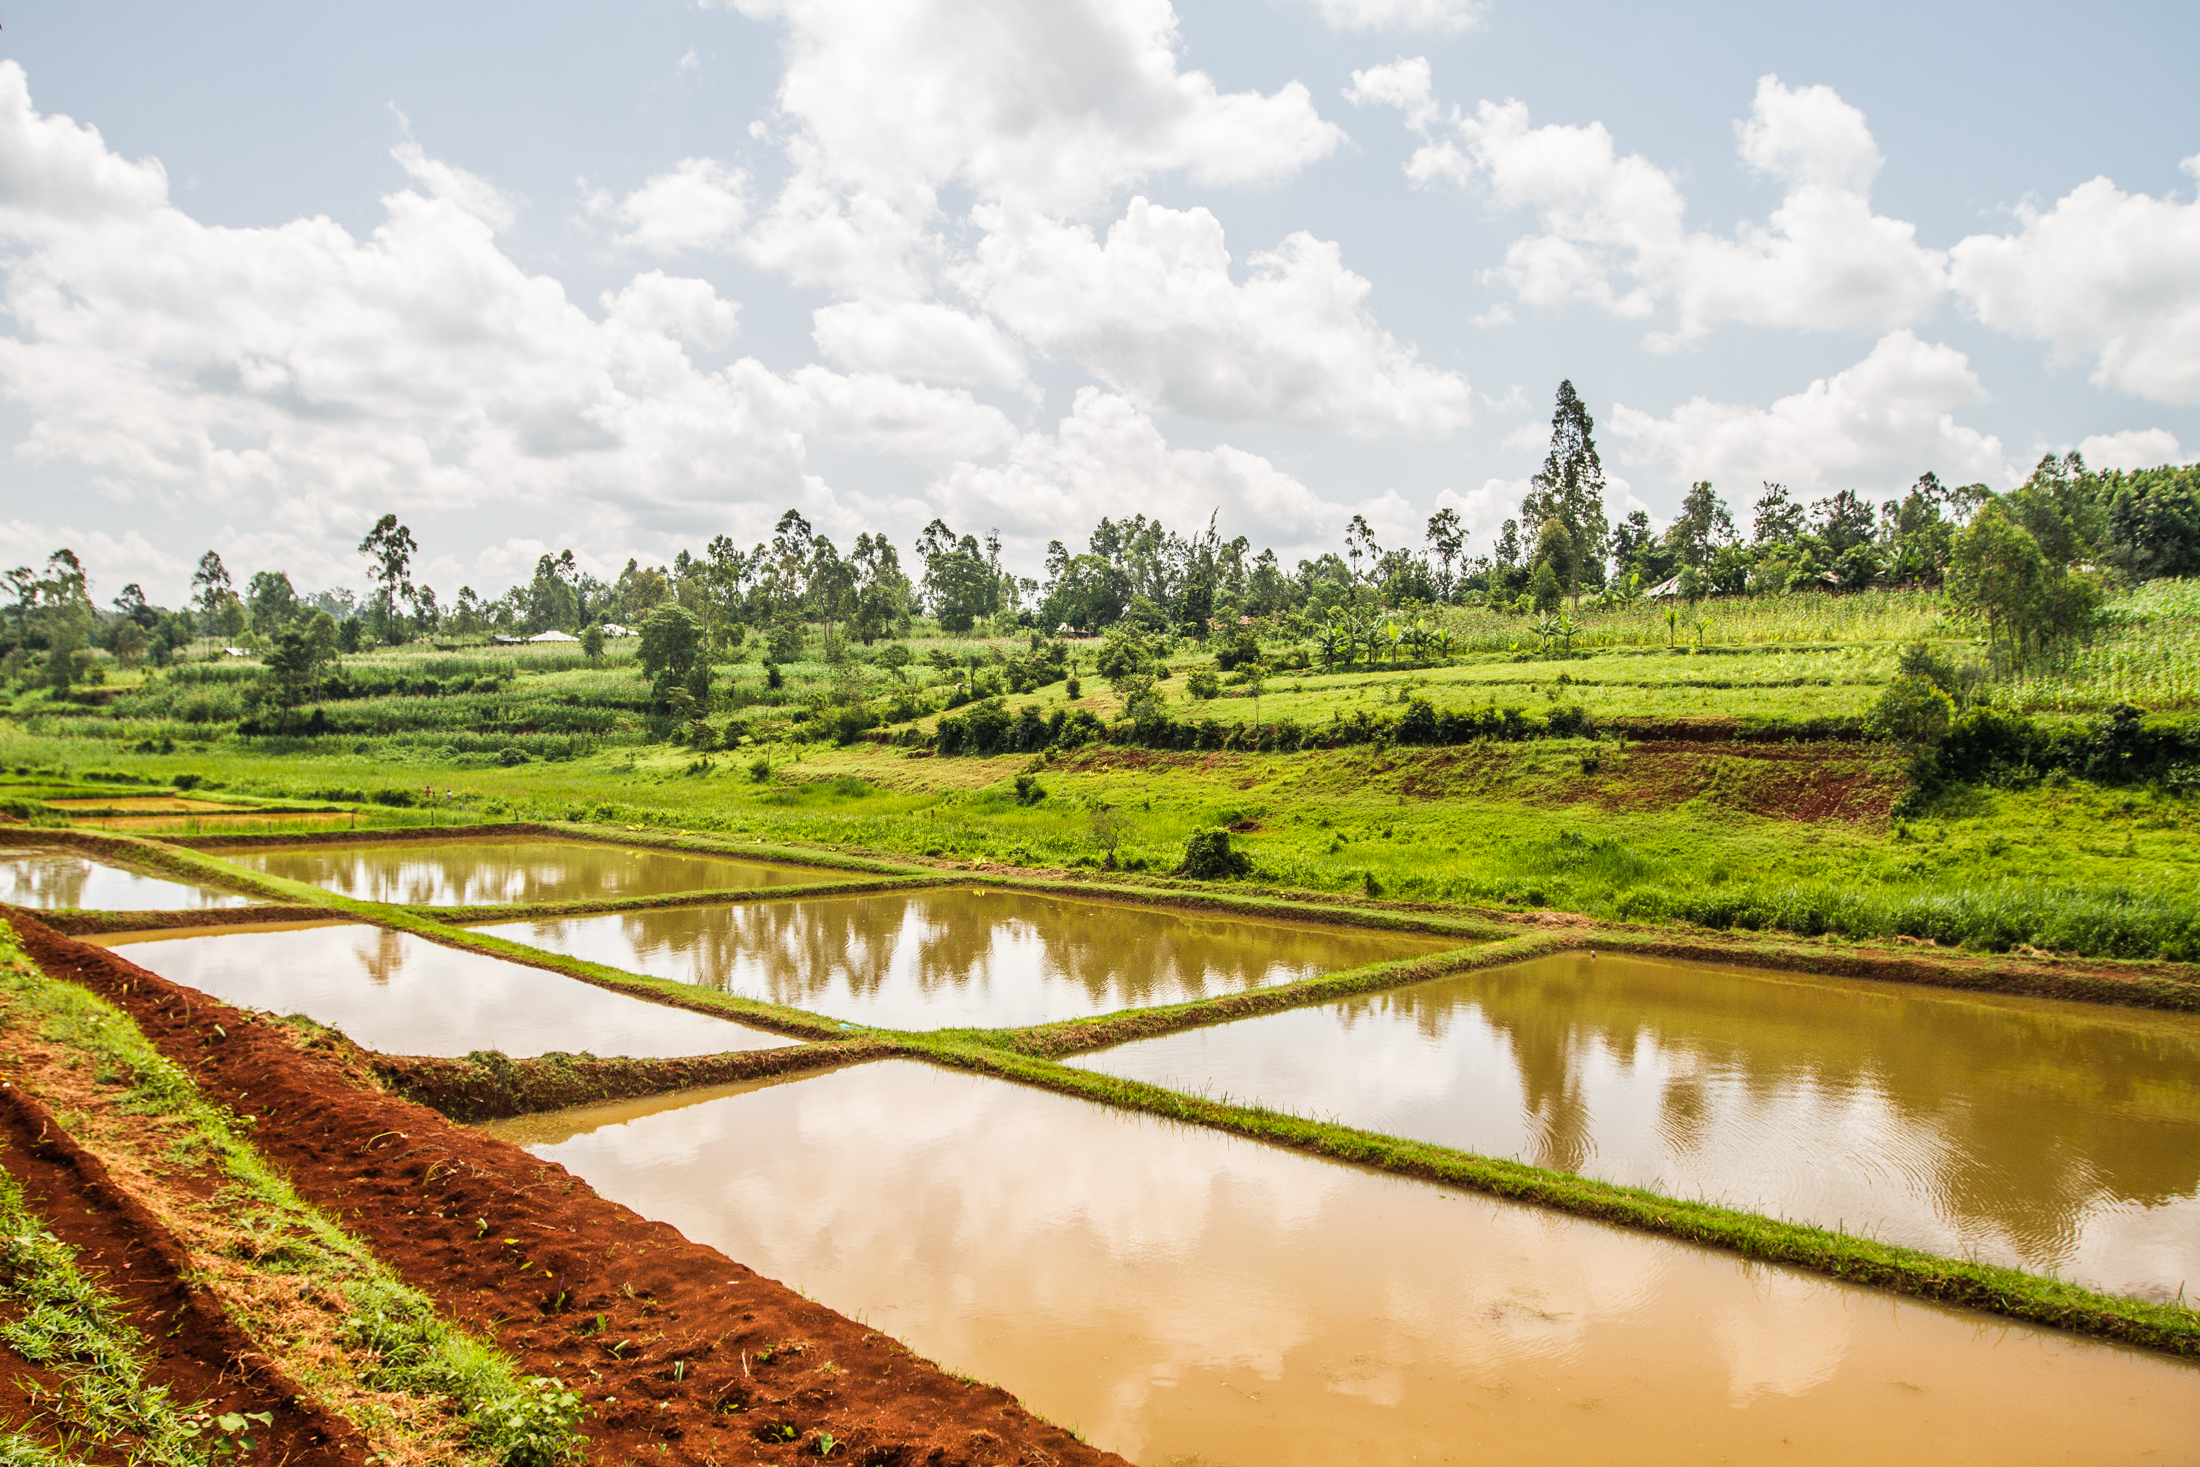 Farm africa expands fish farming in kenya latest news for Fish farming ponds